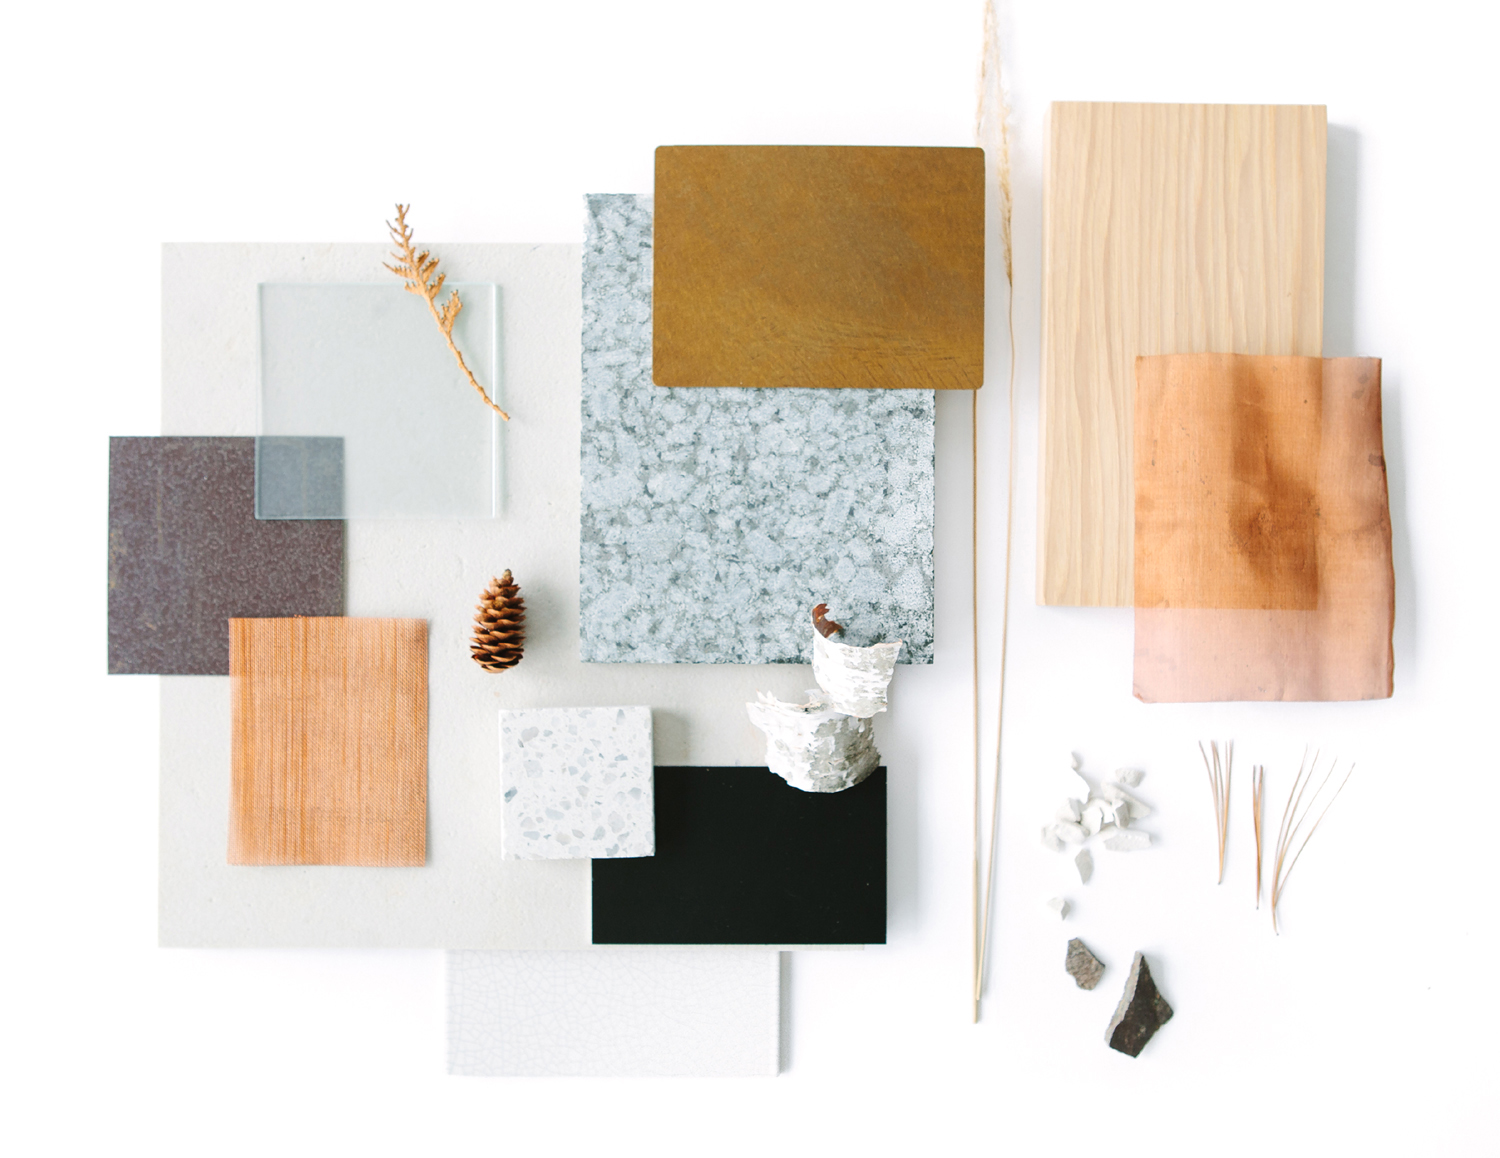 - All of these components and functions are precisely interlaced into a three-dimensional, functional weave: views, vegetation, sun, stone, steel, copper, glass, trees, and timber.This material palette and complex layering inspired by the North Shore wilderness is assembled with a modernist order, efficiency and clean line, while embracing metamorphosis in patina and vegetation. Soft natural light touches all the rooms, even with drapery drawn, through roof light tubes concealed by an etched glass ceiling. Like the tranquility of a translucent ice covered lake, the etched glass floors/ceilings have an immaterial lightness.